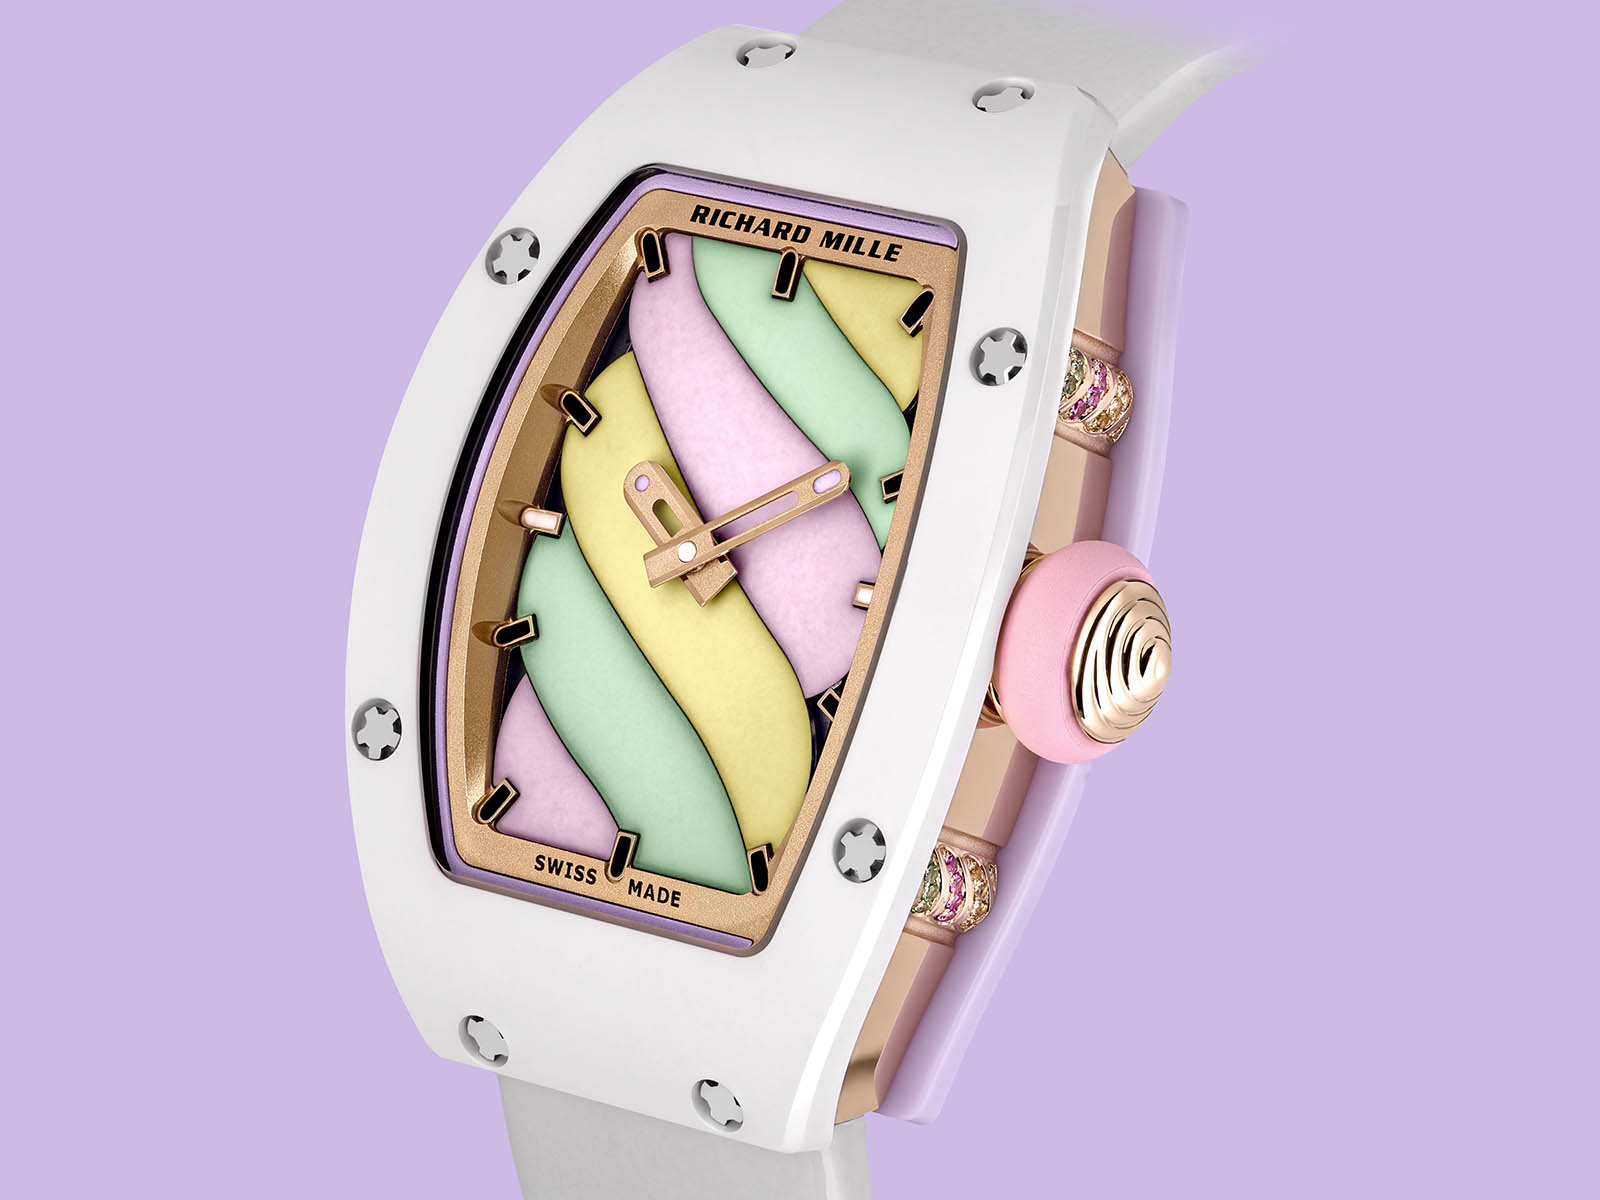 rm-07-03-richard-mille-automatic-marshmallow.jpg